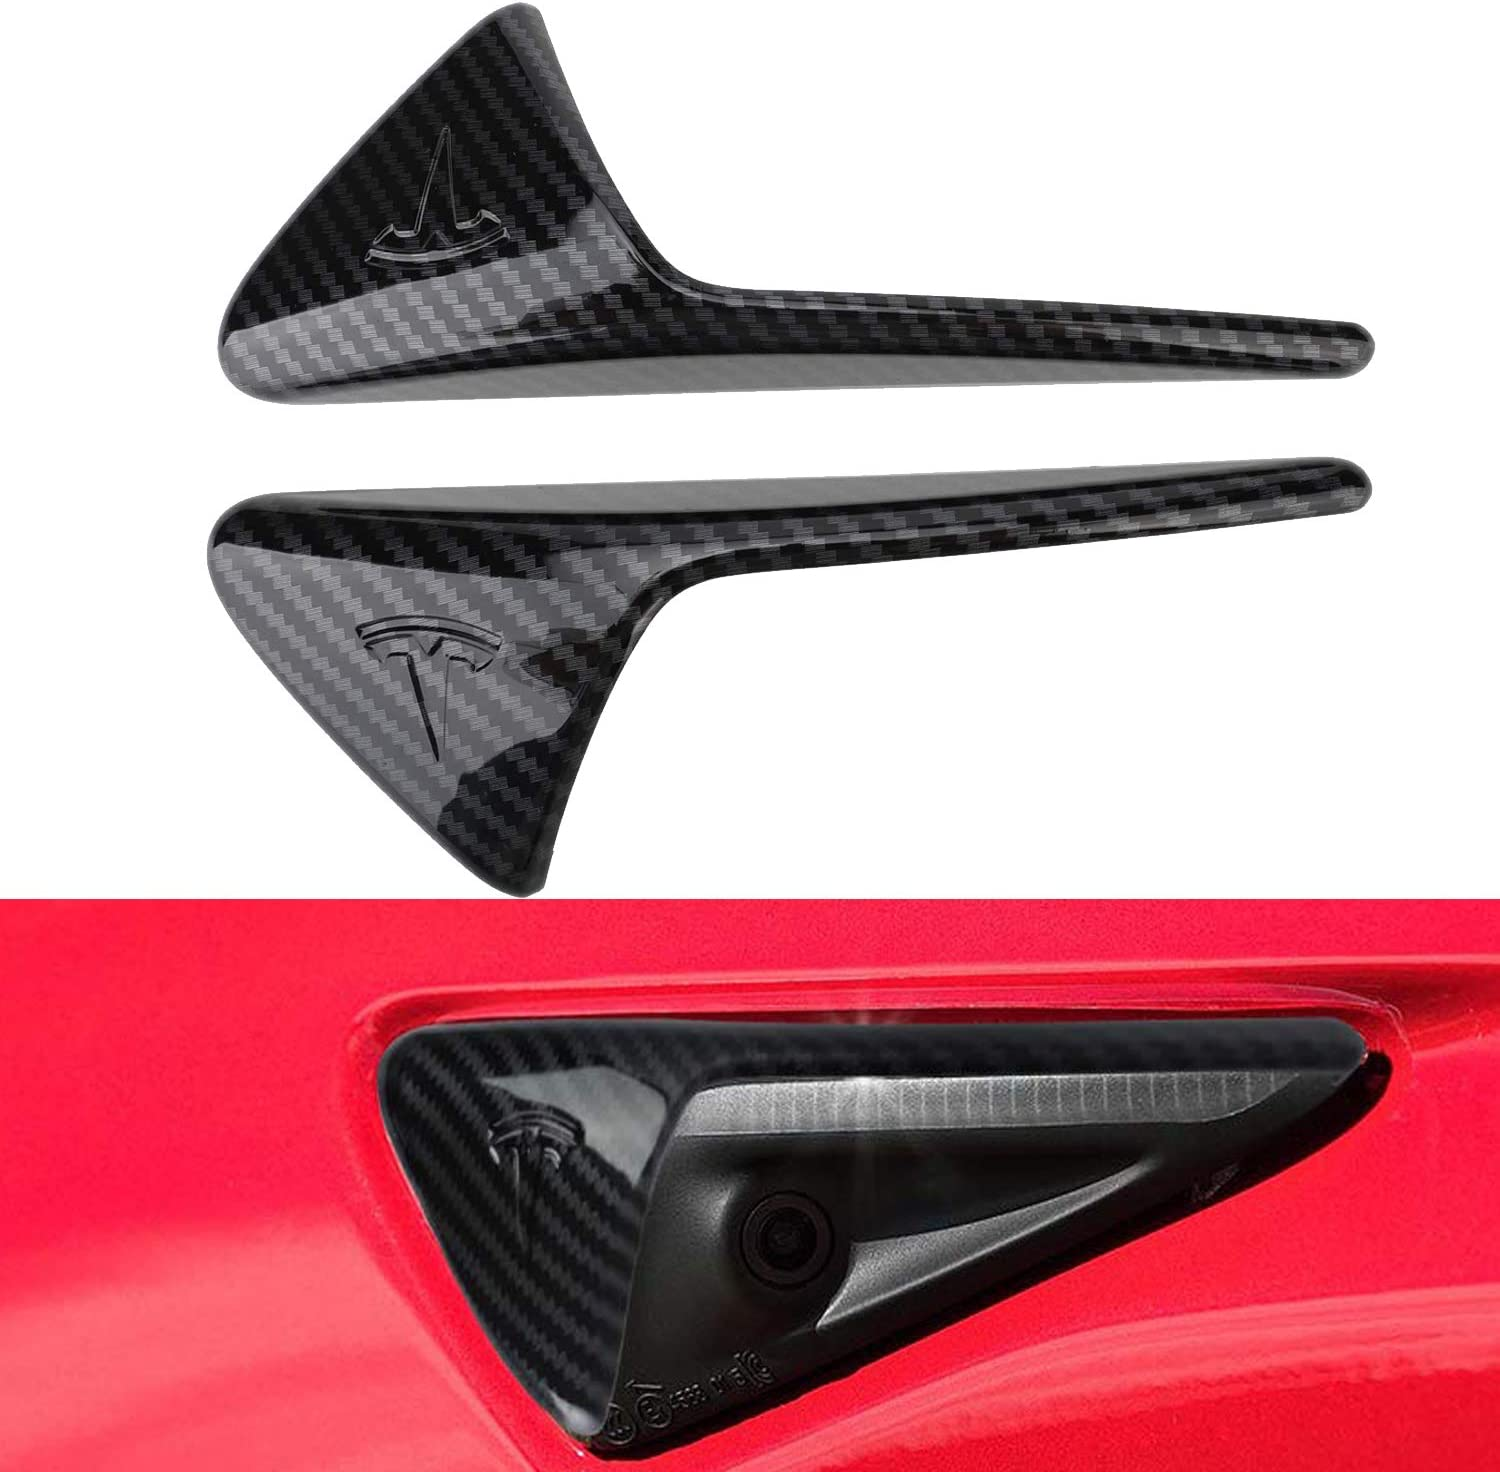 VXDAS 2 Pack T esla Model 3 Turn Signal Indicator Cover for T-esla Model 3 S X Autopilot 2.0-3.0 Real Carbon Fiber Side Markers Turn Signal Covers Perfect Fitment